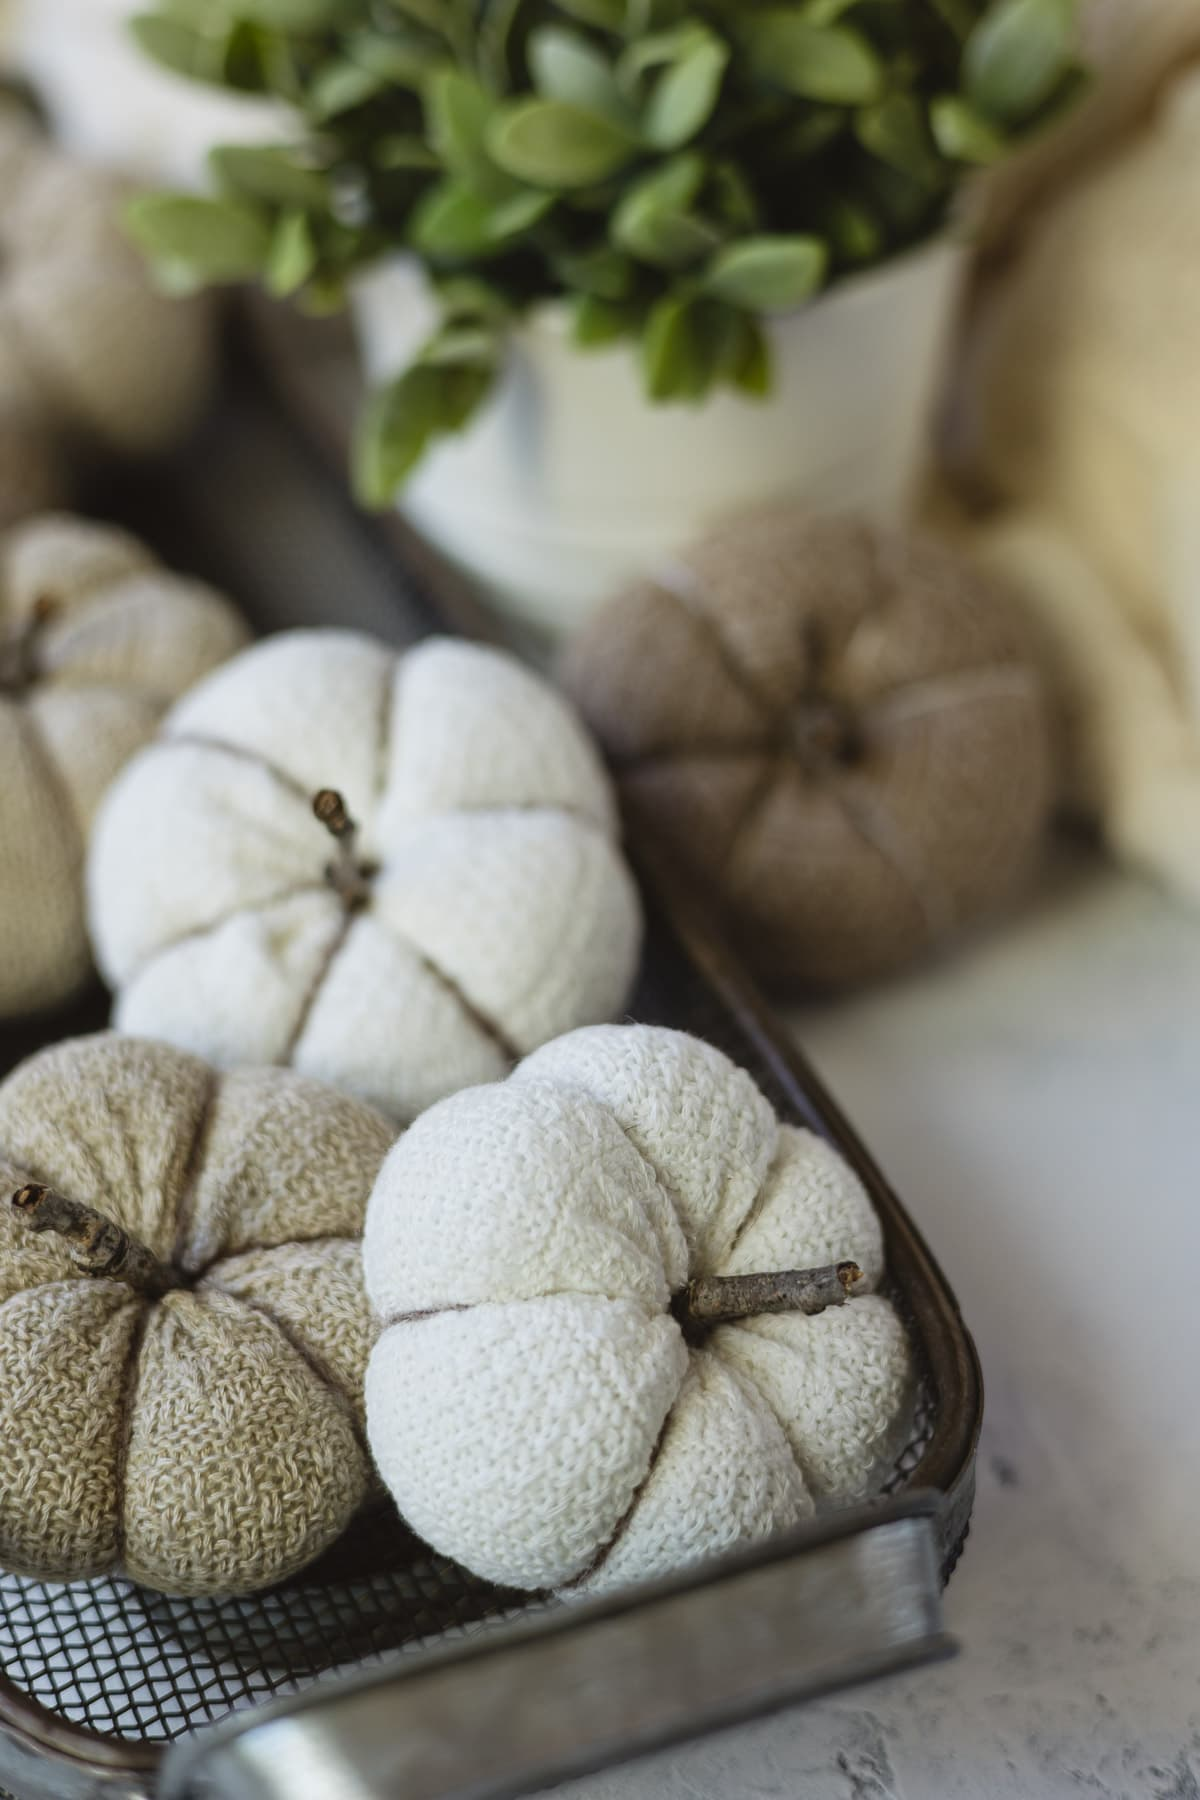 Brown and white DIY sock pumpkins arranged in a decorative basket.